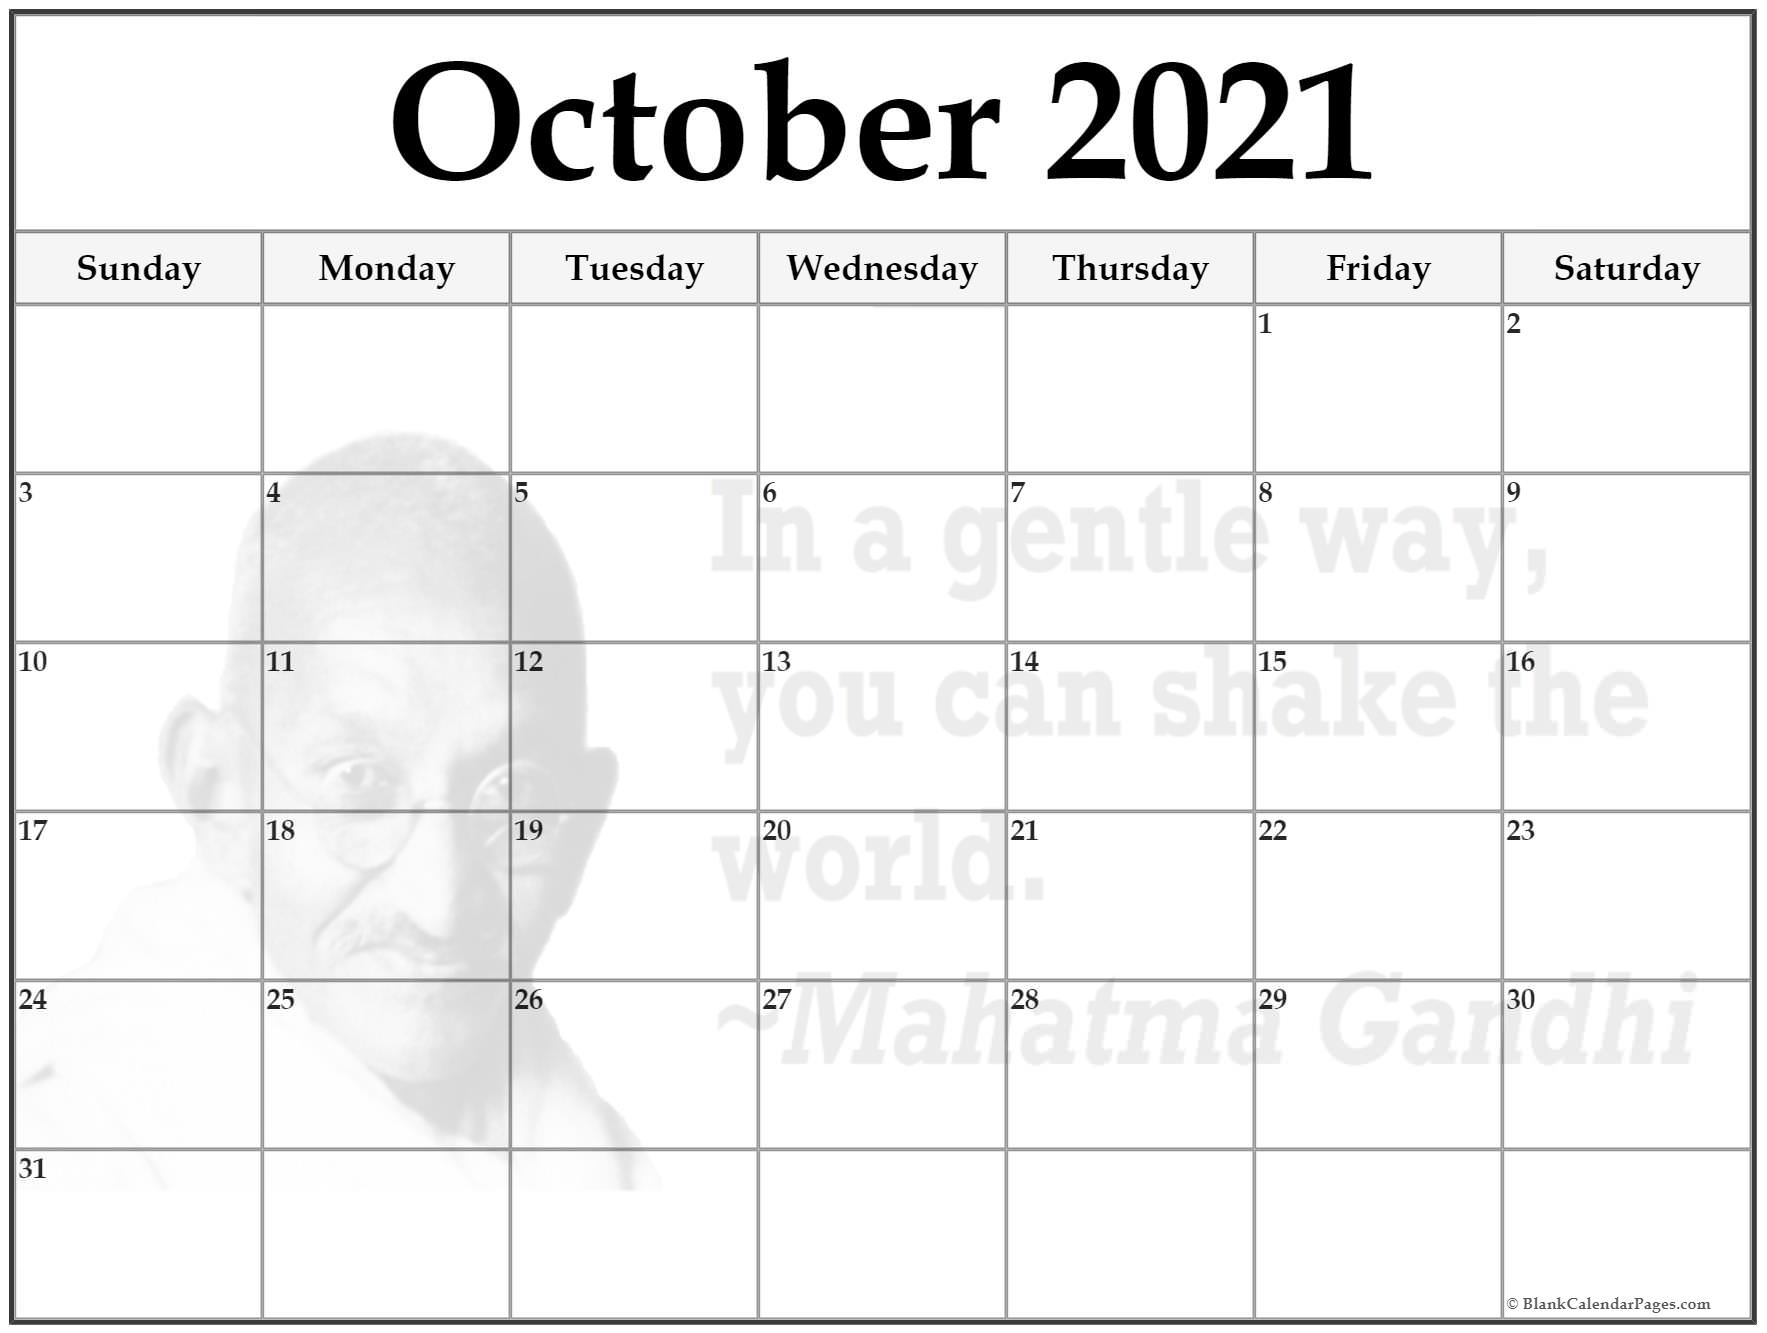 October 2019 quote calendar . In a gentle way, you can shake the world. ~Mahatma Gandhi